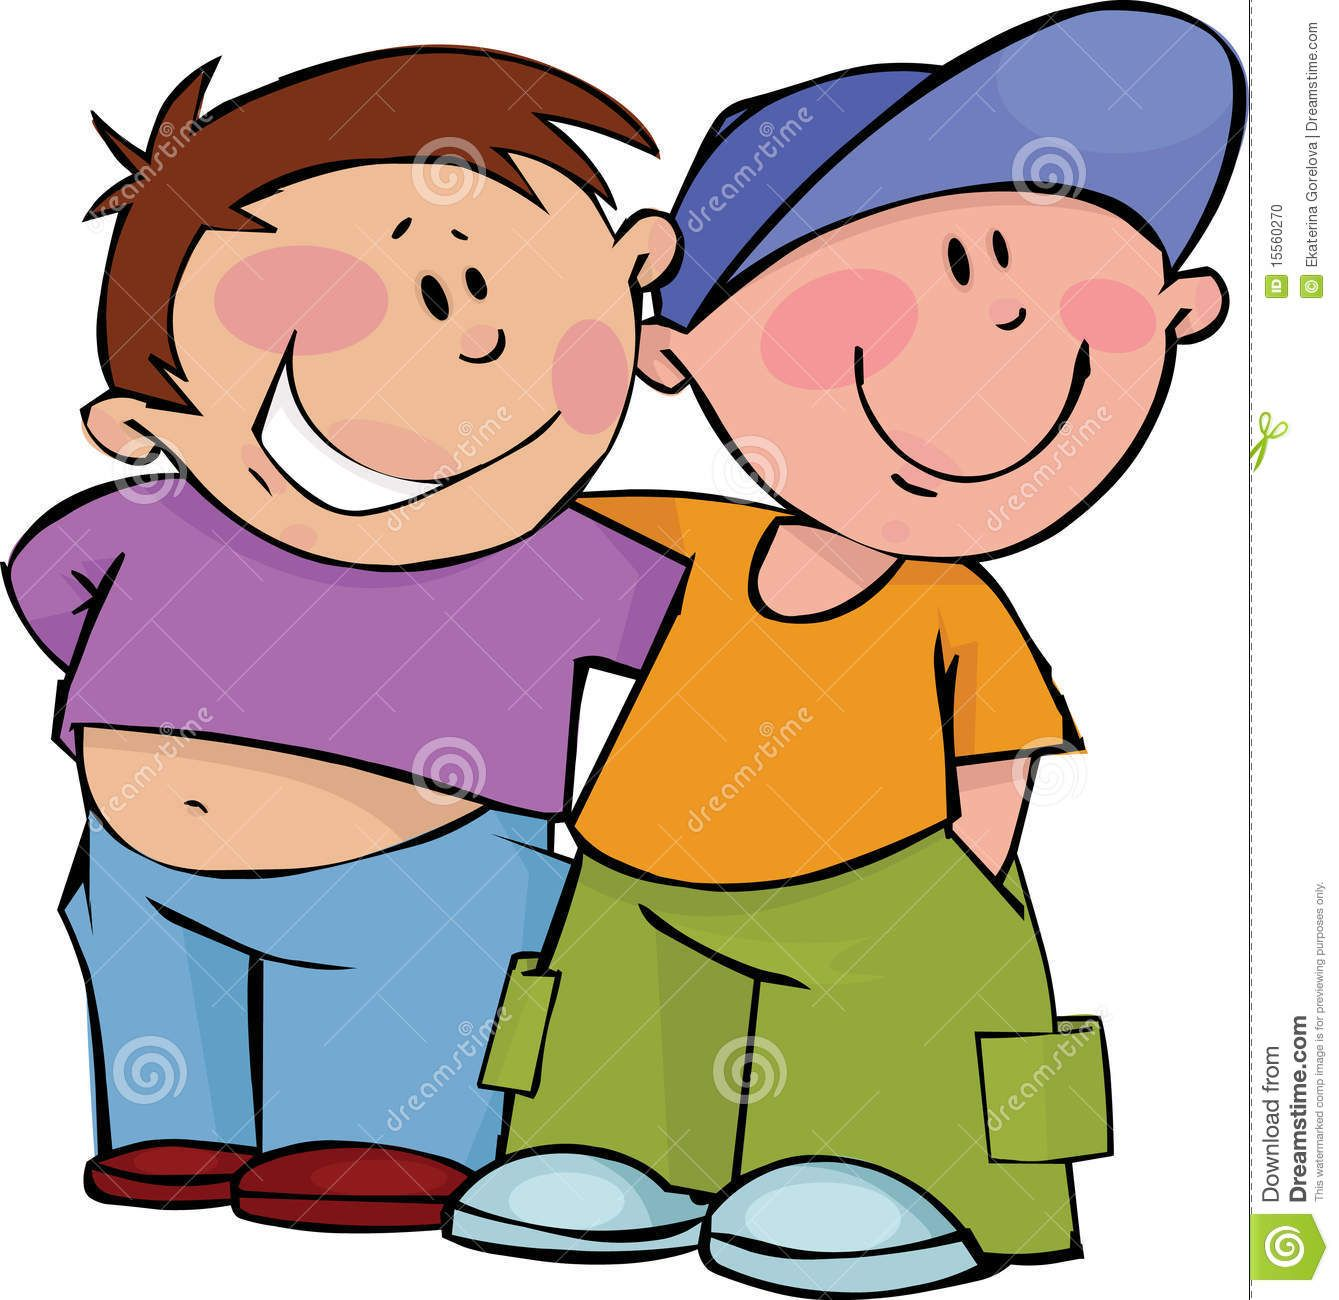 Two freinds hugging clipart emotional jpg free library clipart friends | Two funny boys in a friendly hug. | More ... jpg free library